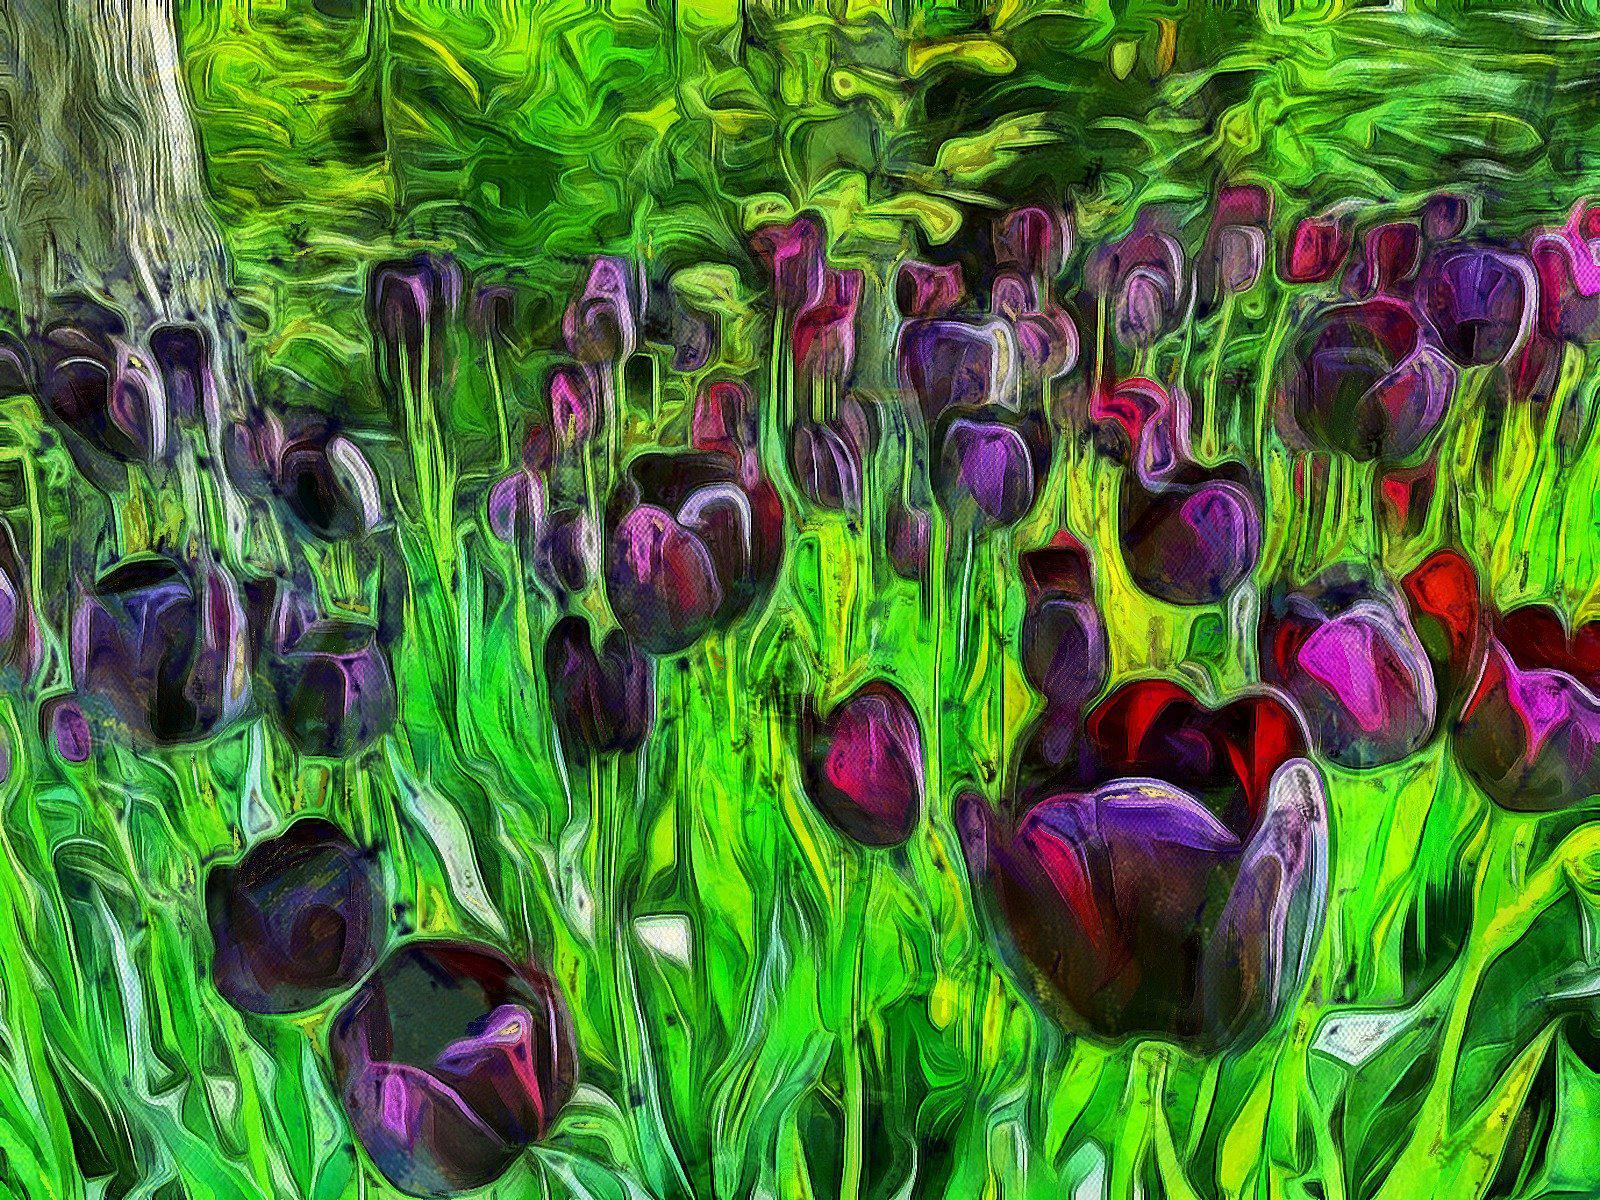 Black Tulips - Art Inspired by Vincent van Gogh